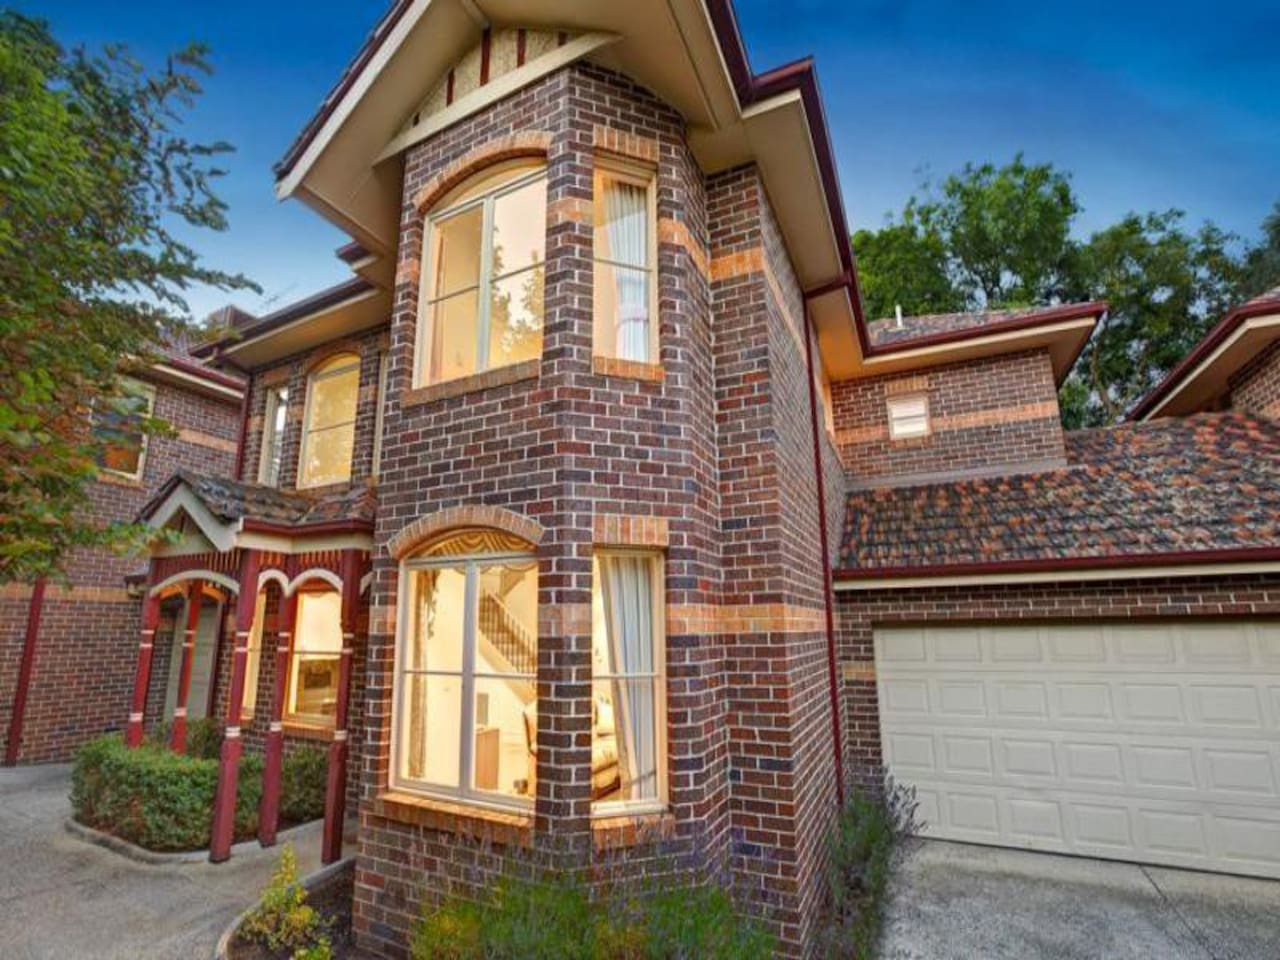 Room for rent, townhouse in Kew